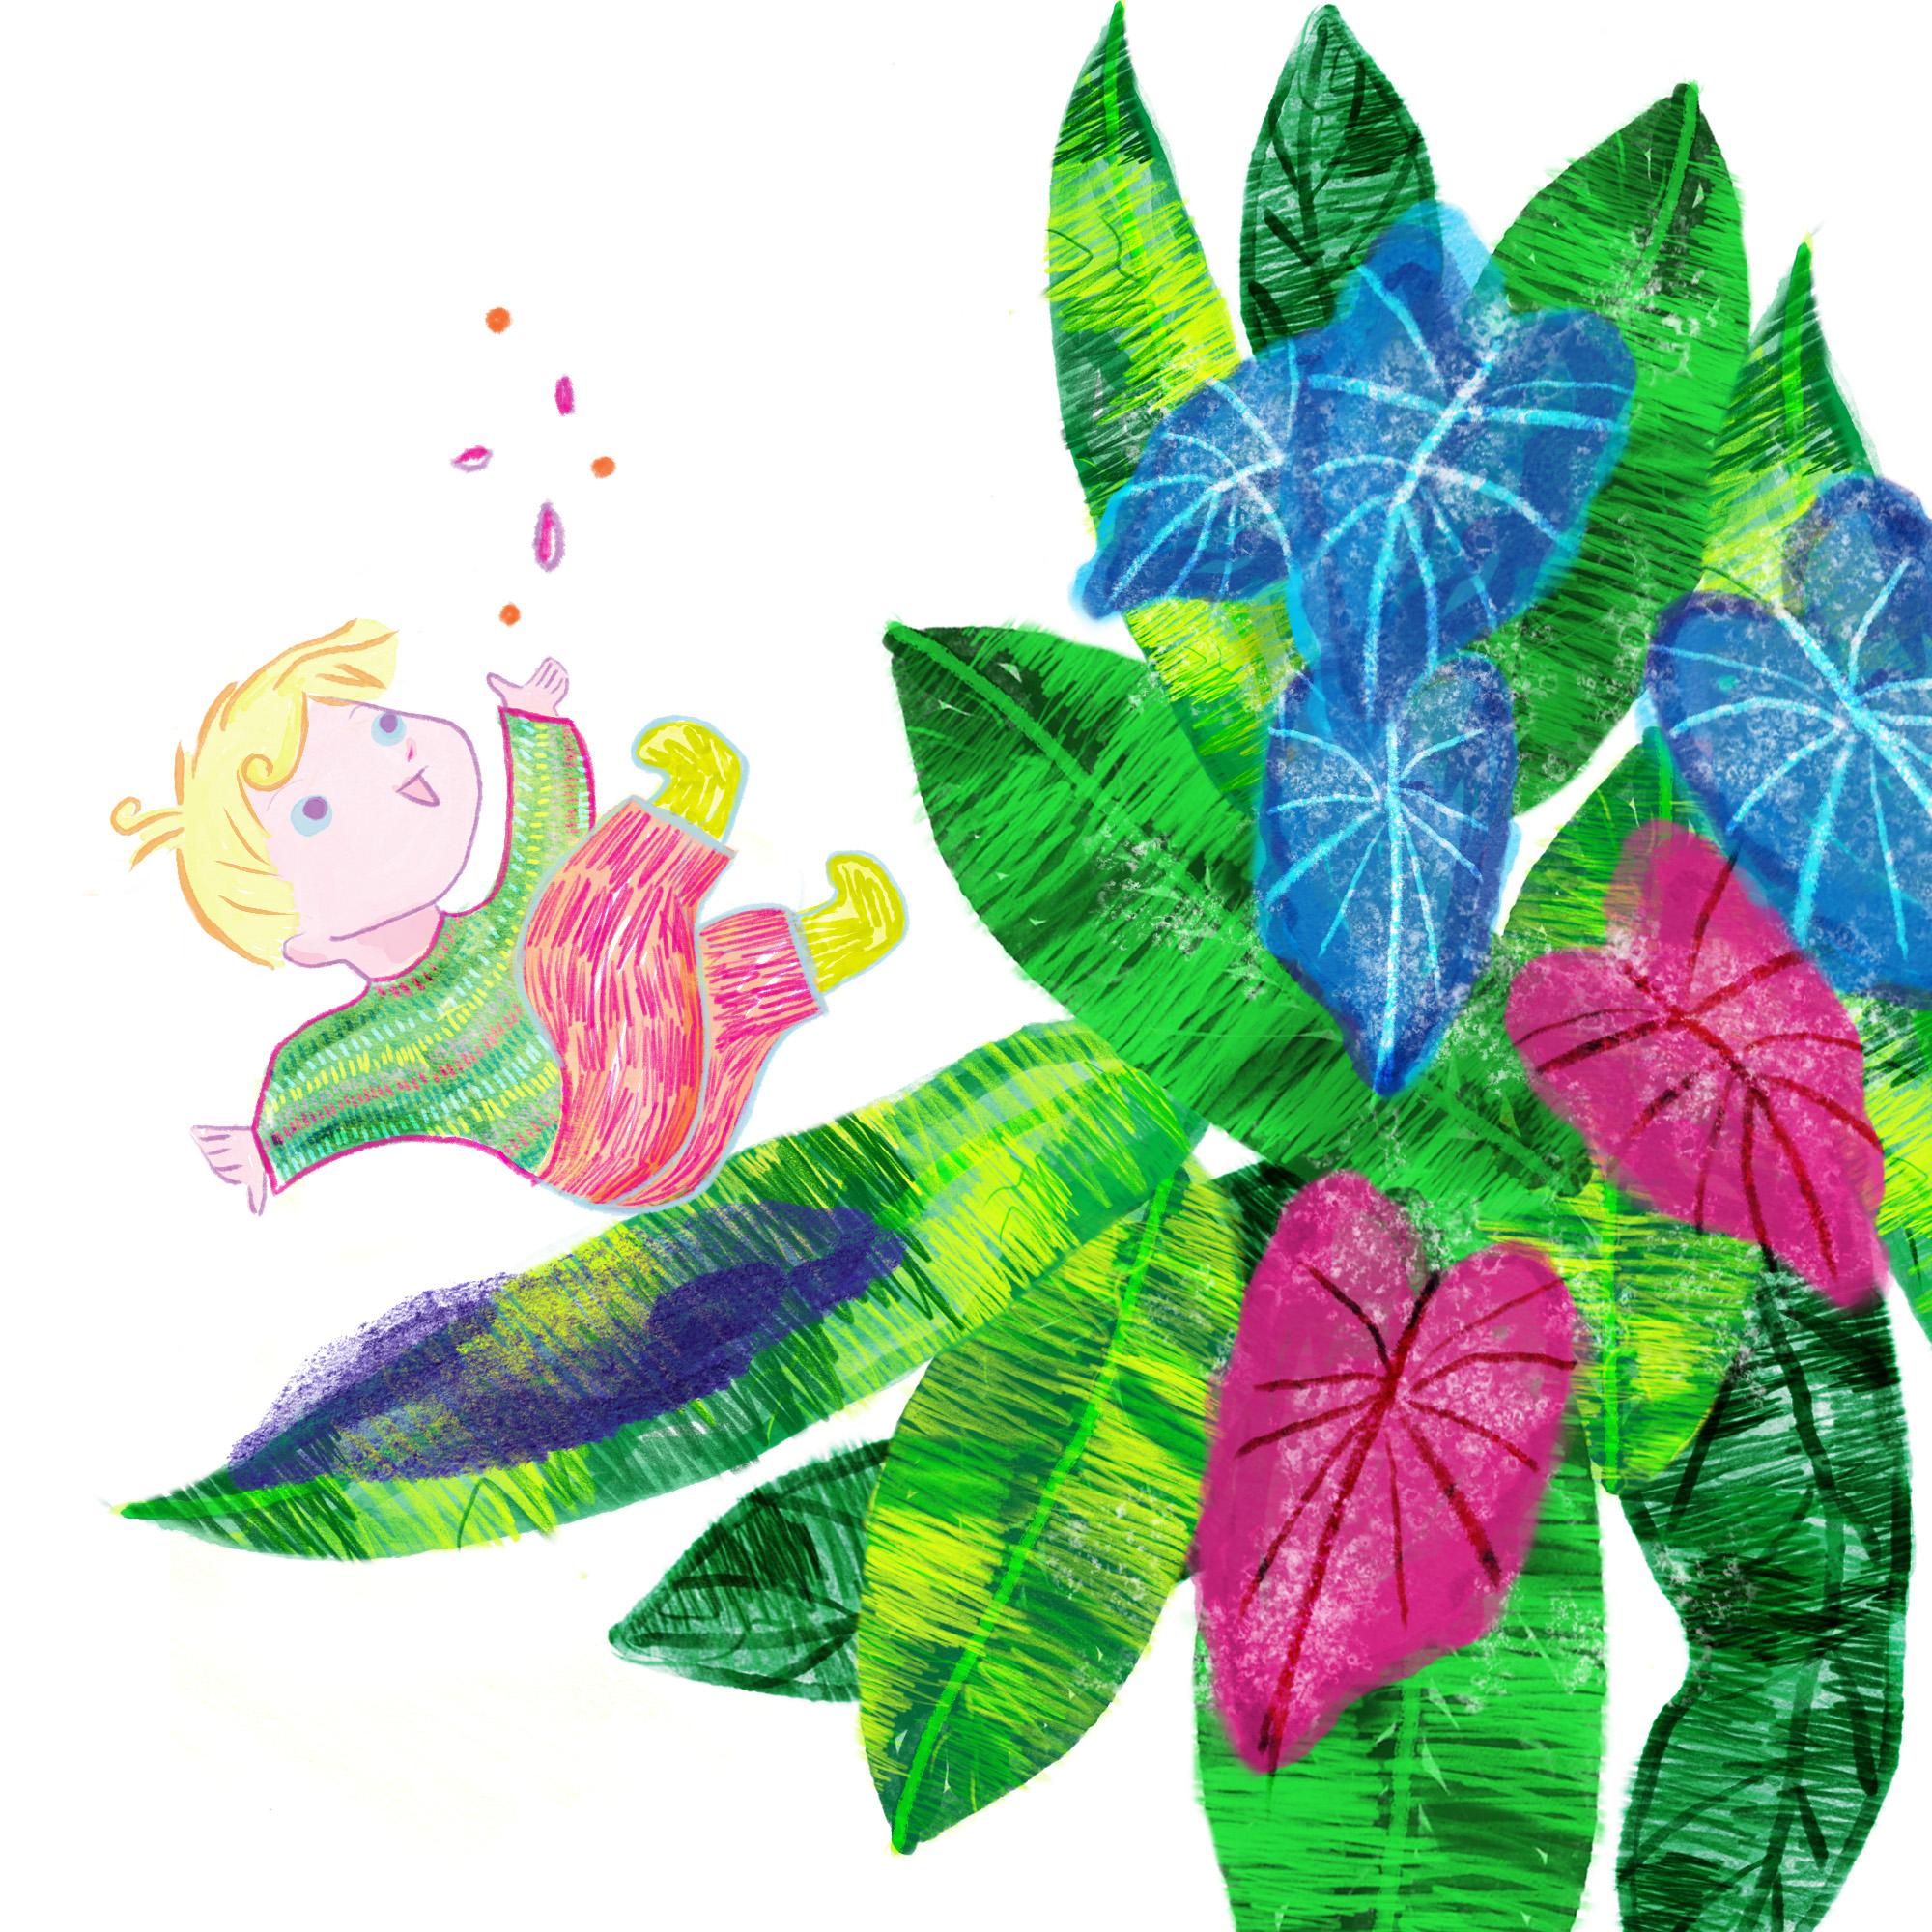 kinderboek tekenar tekener teken illustratie english nederlands plant flower green leaf boy seeds play playful children children's book illustration watercolor pencil boy adventure digital